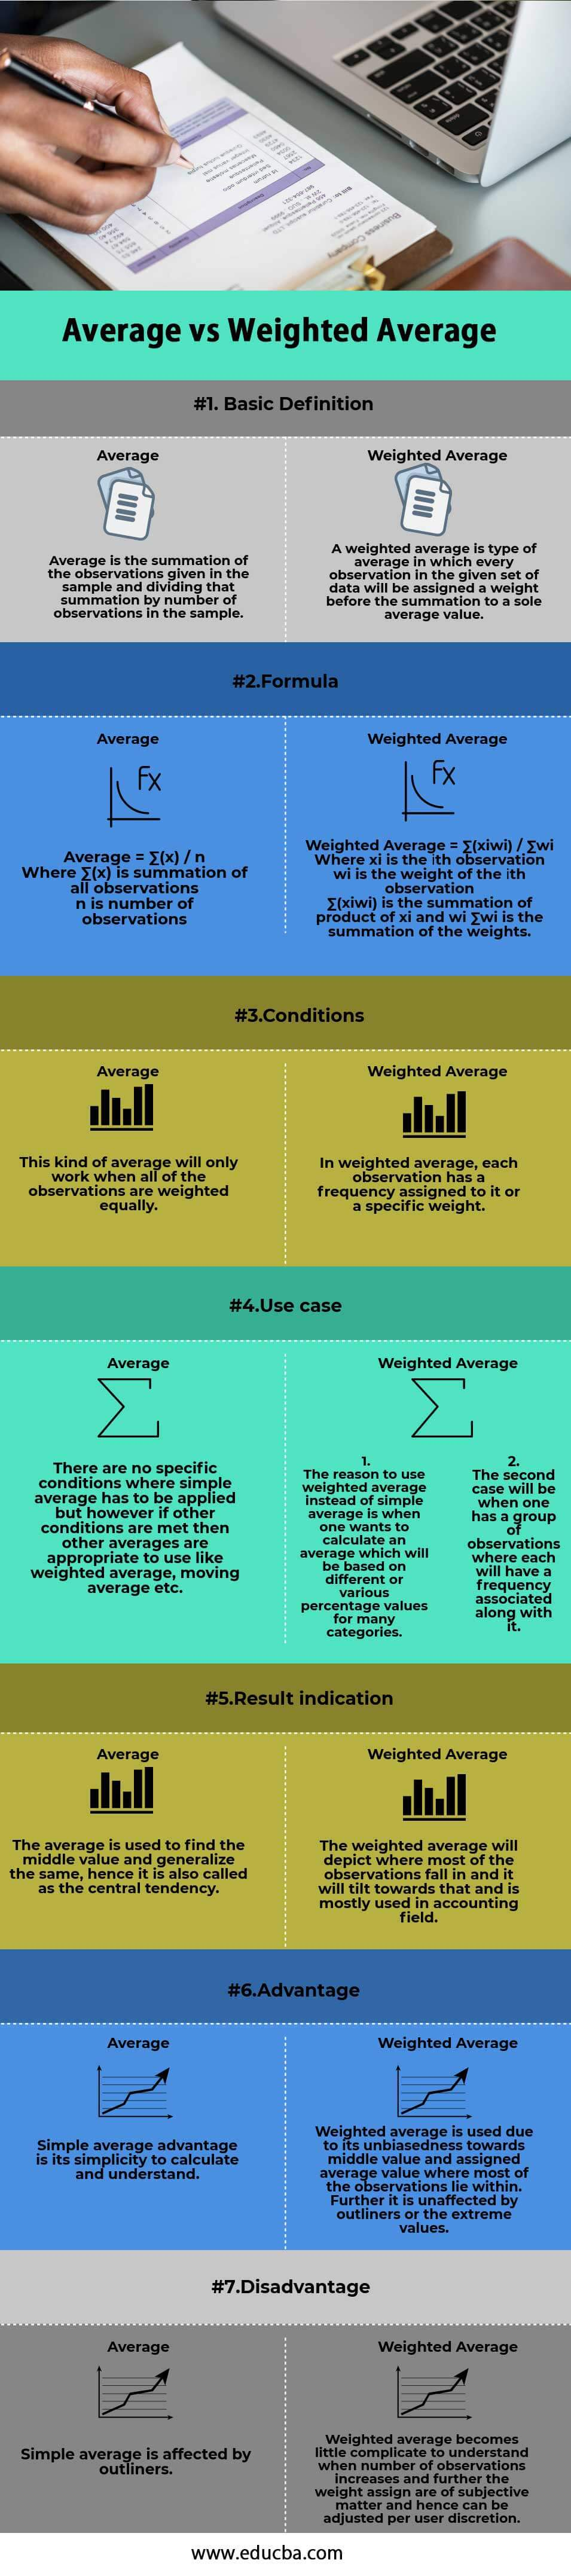 Average vs Weighted Average info